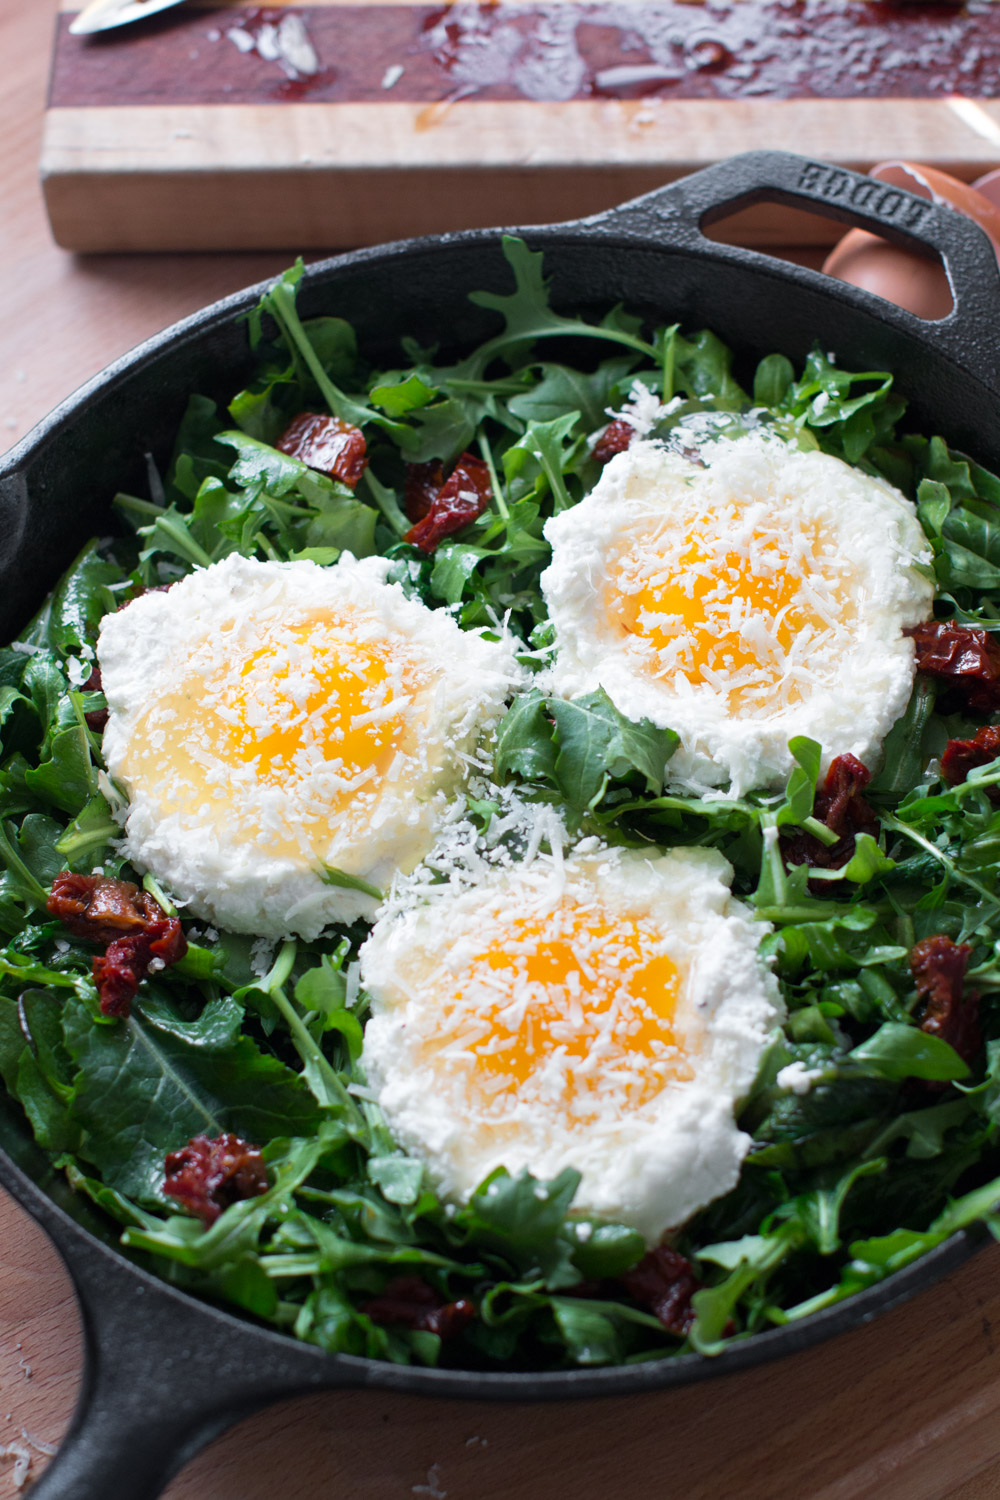 Baked Eggs with Ricotta, Greens & Sun Dried Tomatoes-11